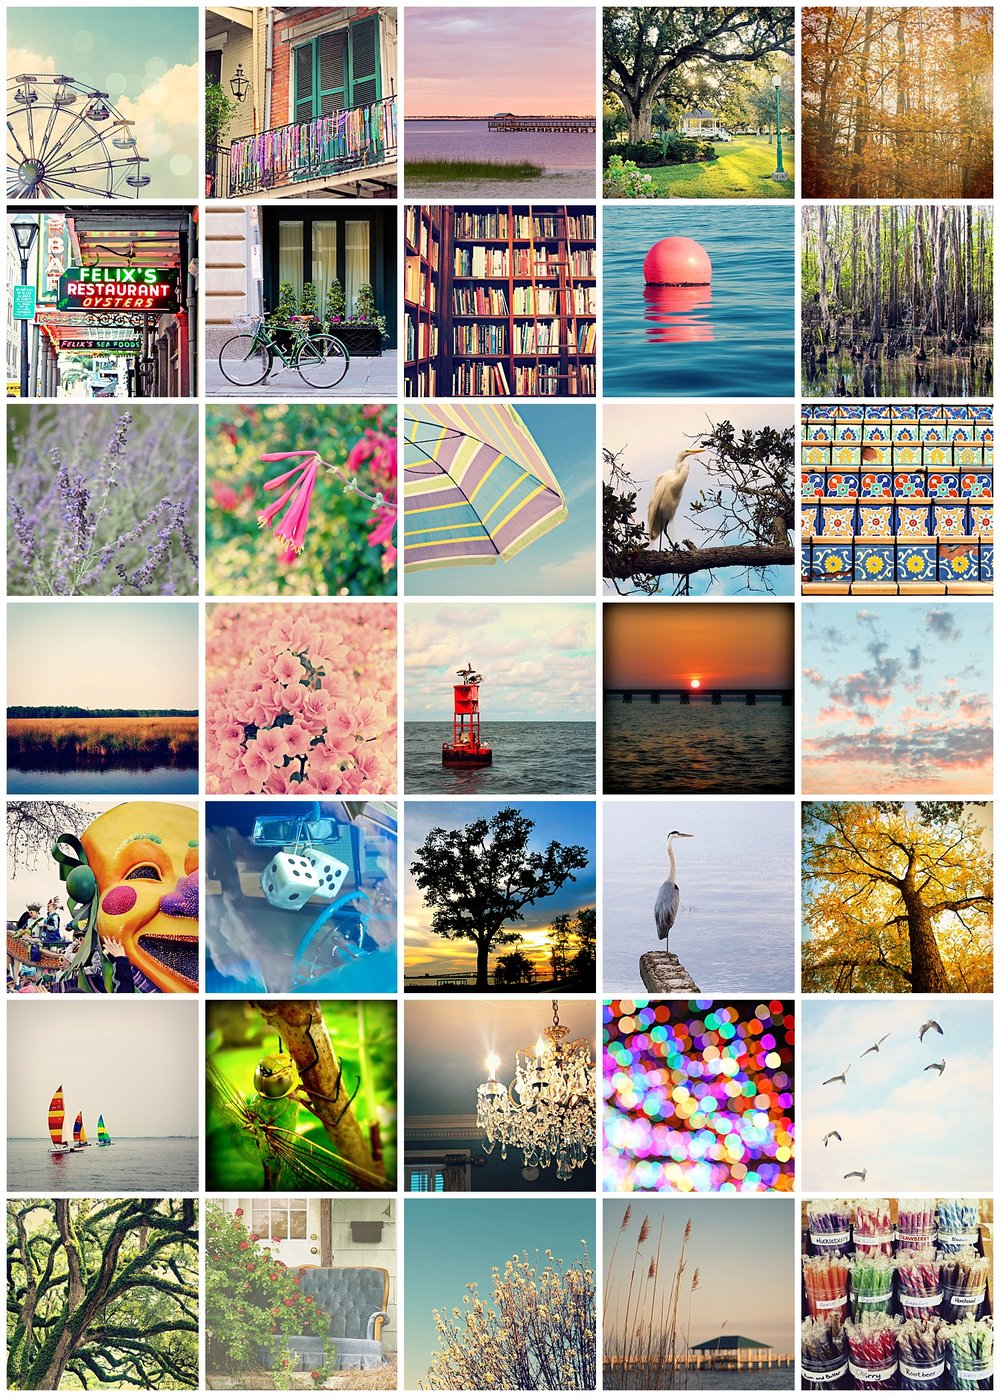 colorful photo prints by Uninvented Colors - available on Etsy